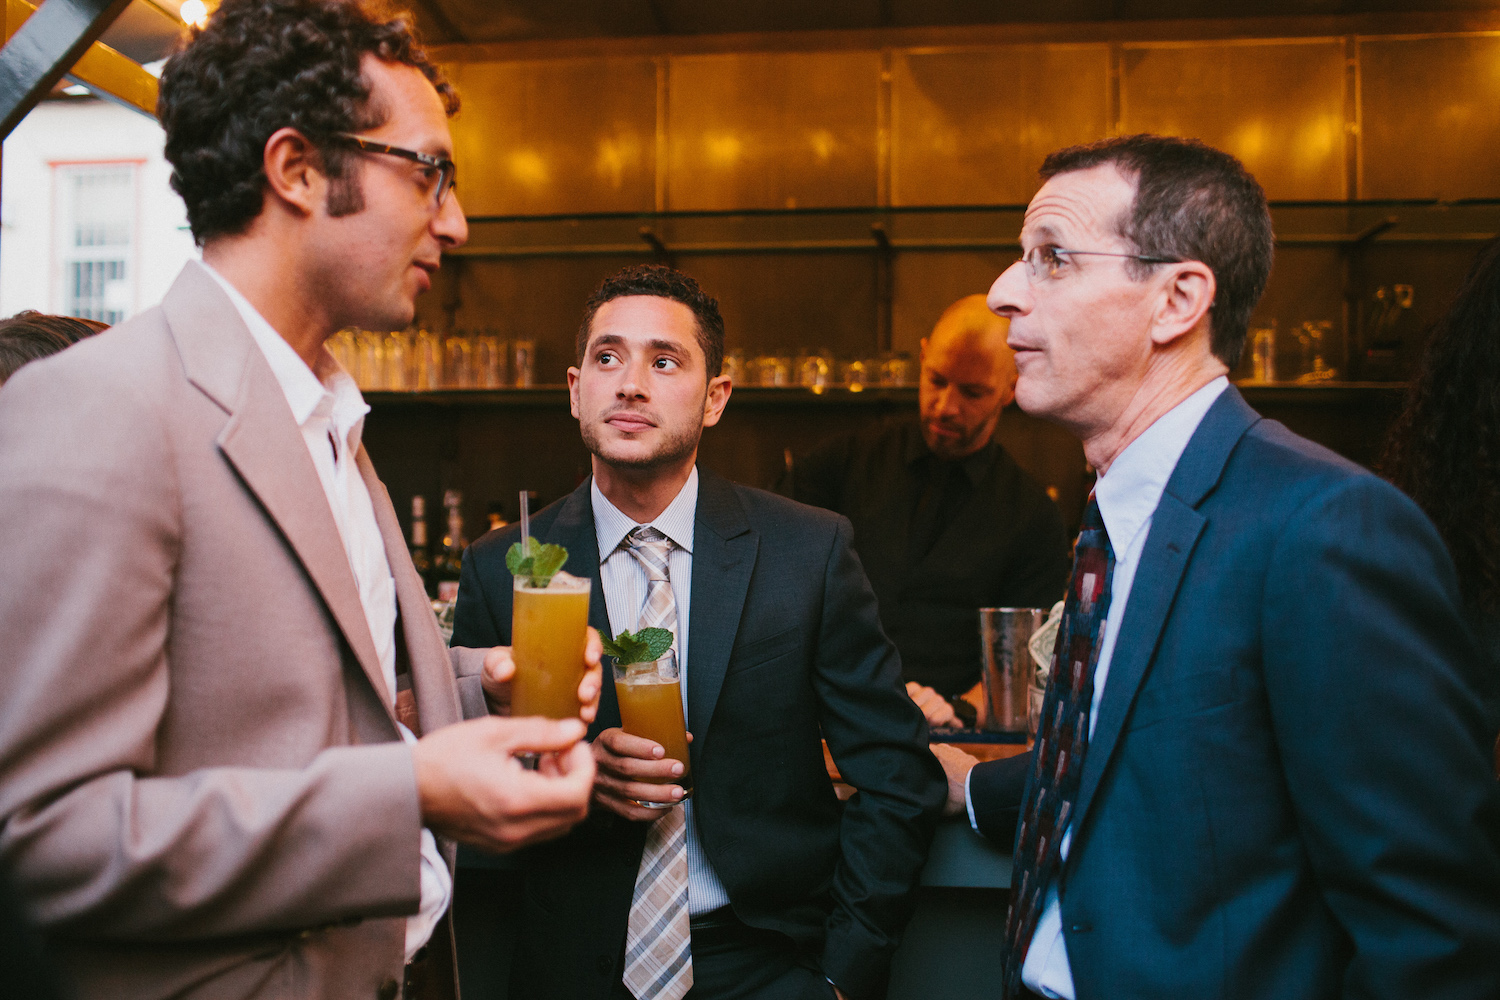 Full Aperture Floral & Corey Torpie Photography  - Brooklyn Wedding - 84.jpeg